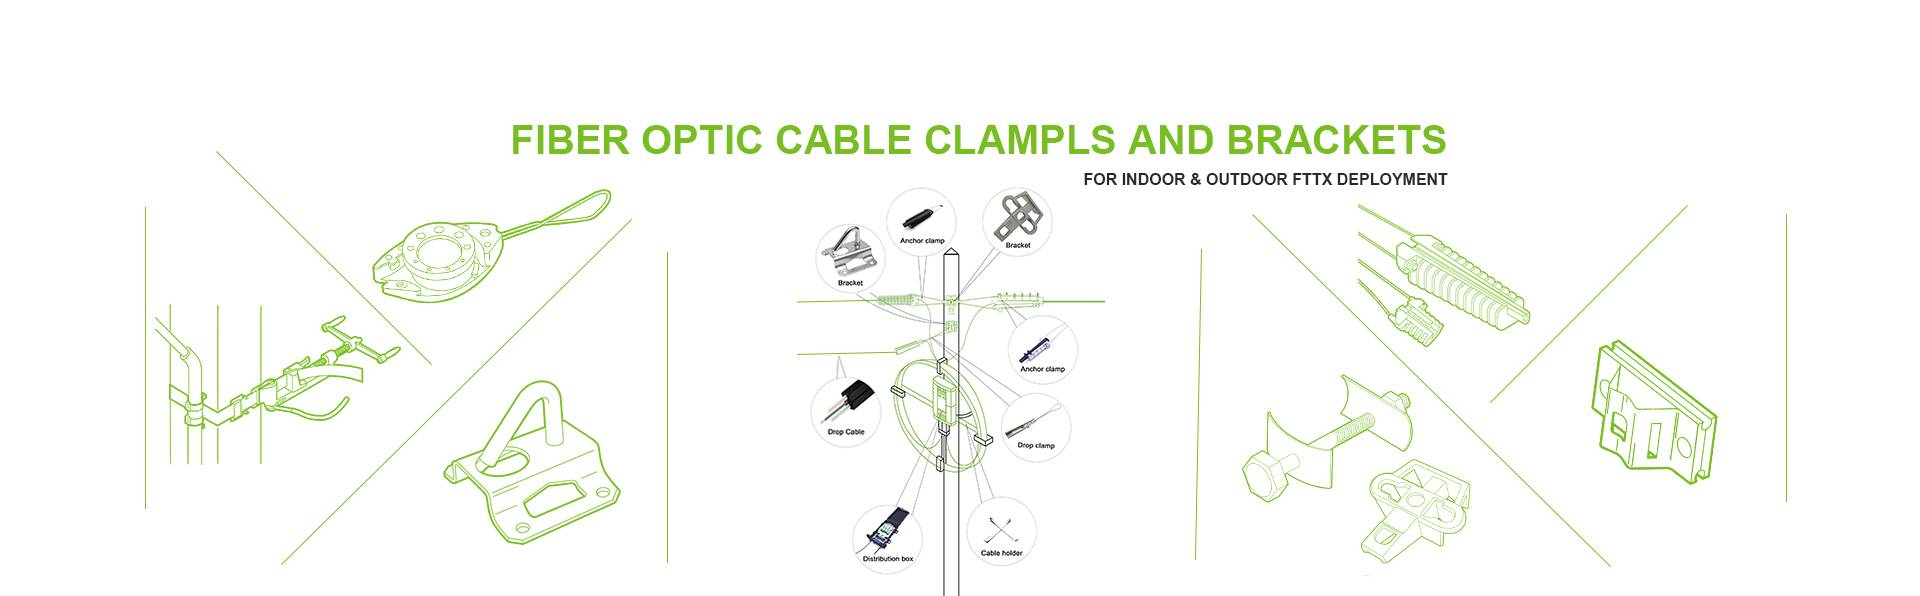 FTTH fiber optic accessories